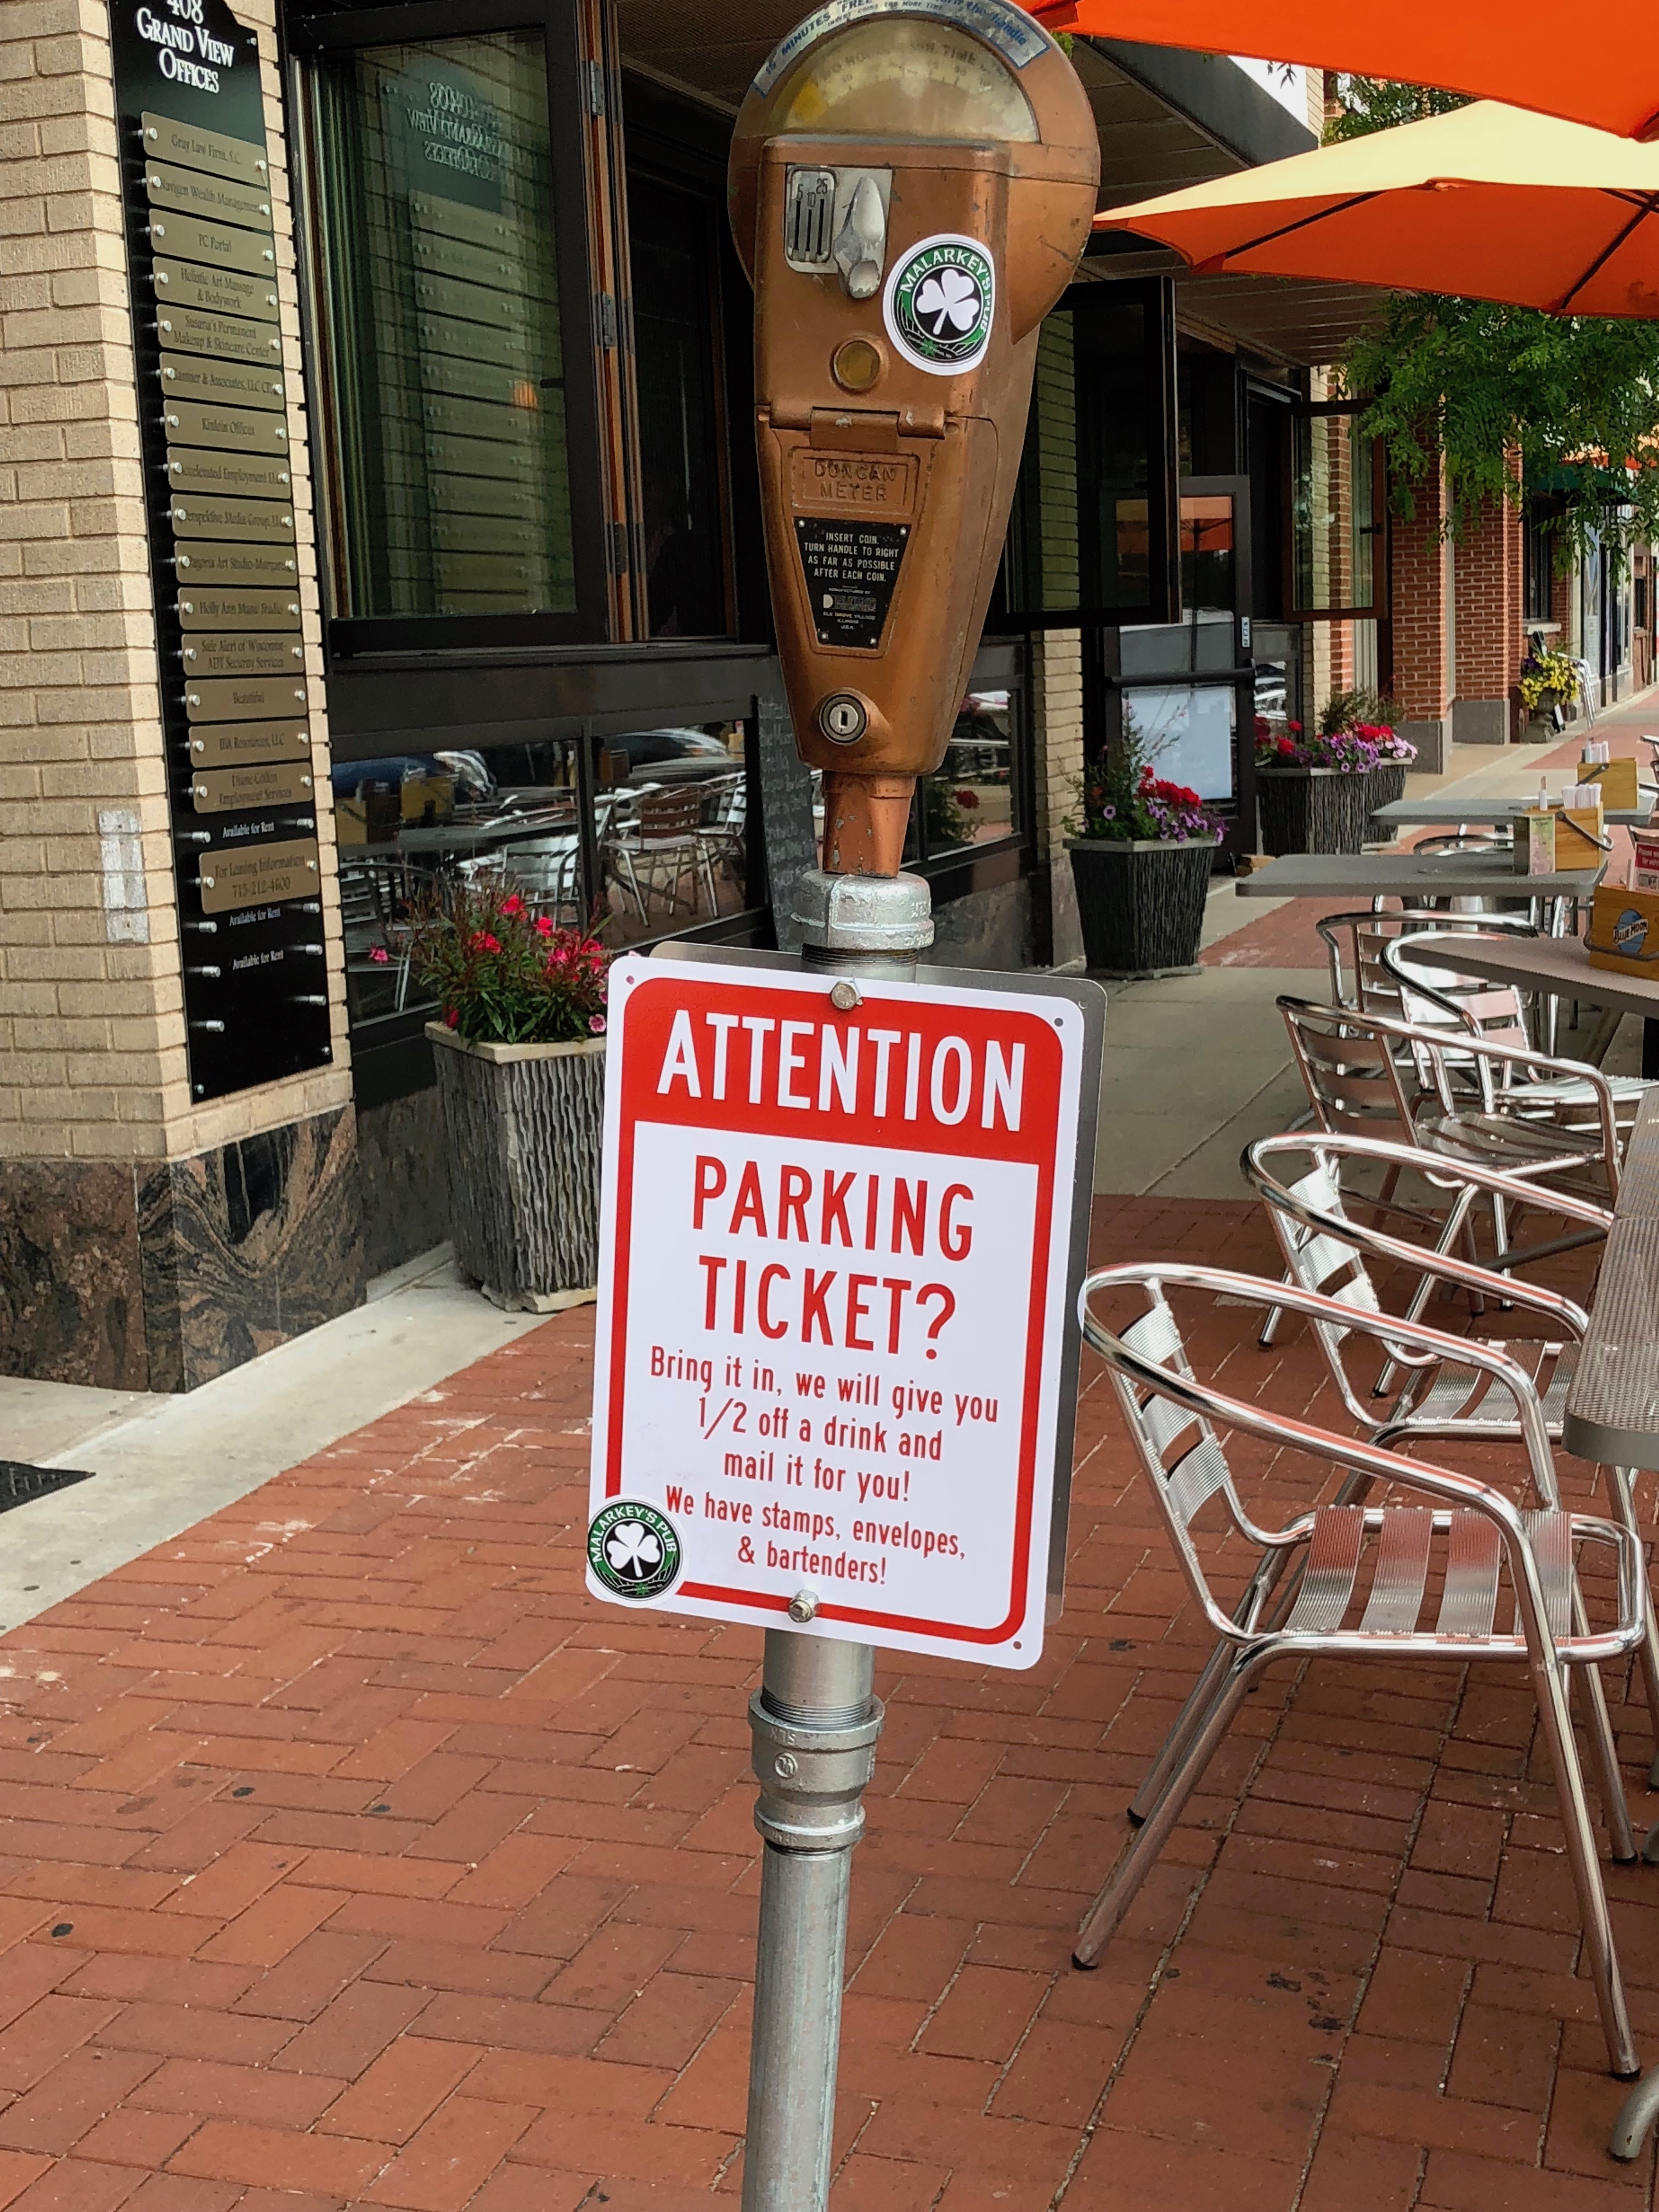 Downtown business owner takes aim at inconsistent parking